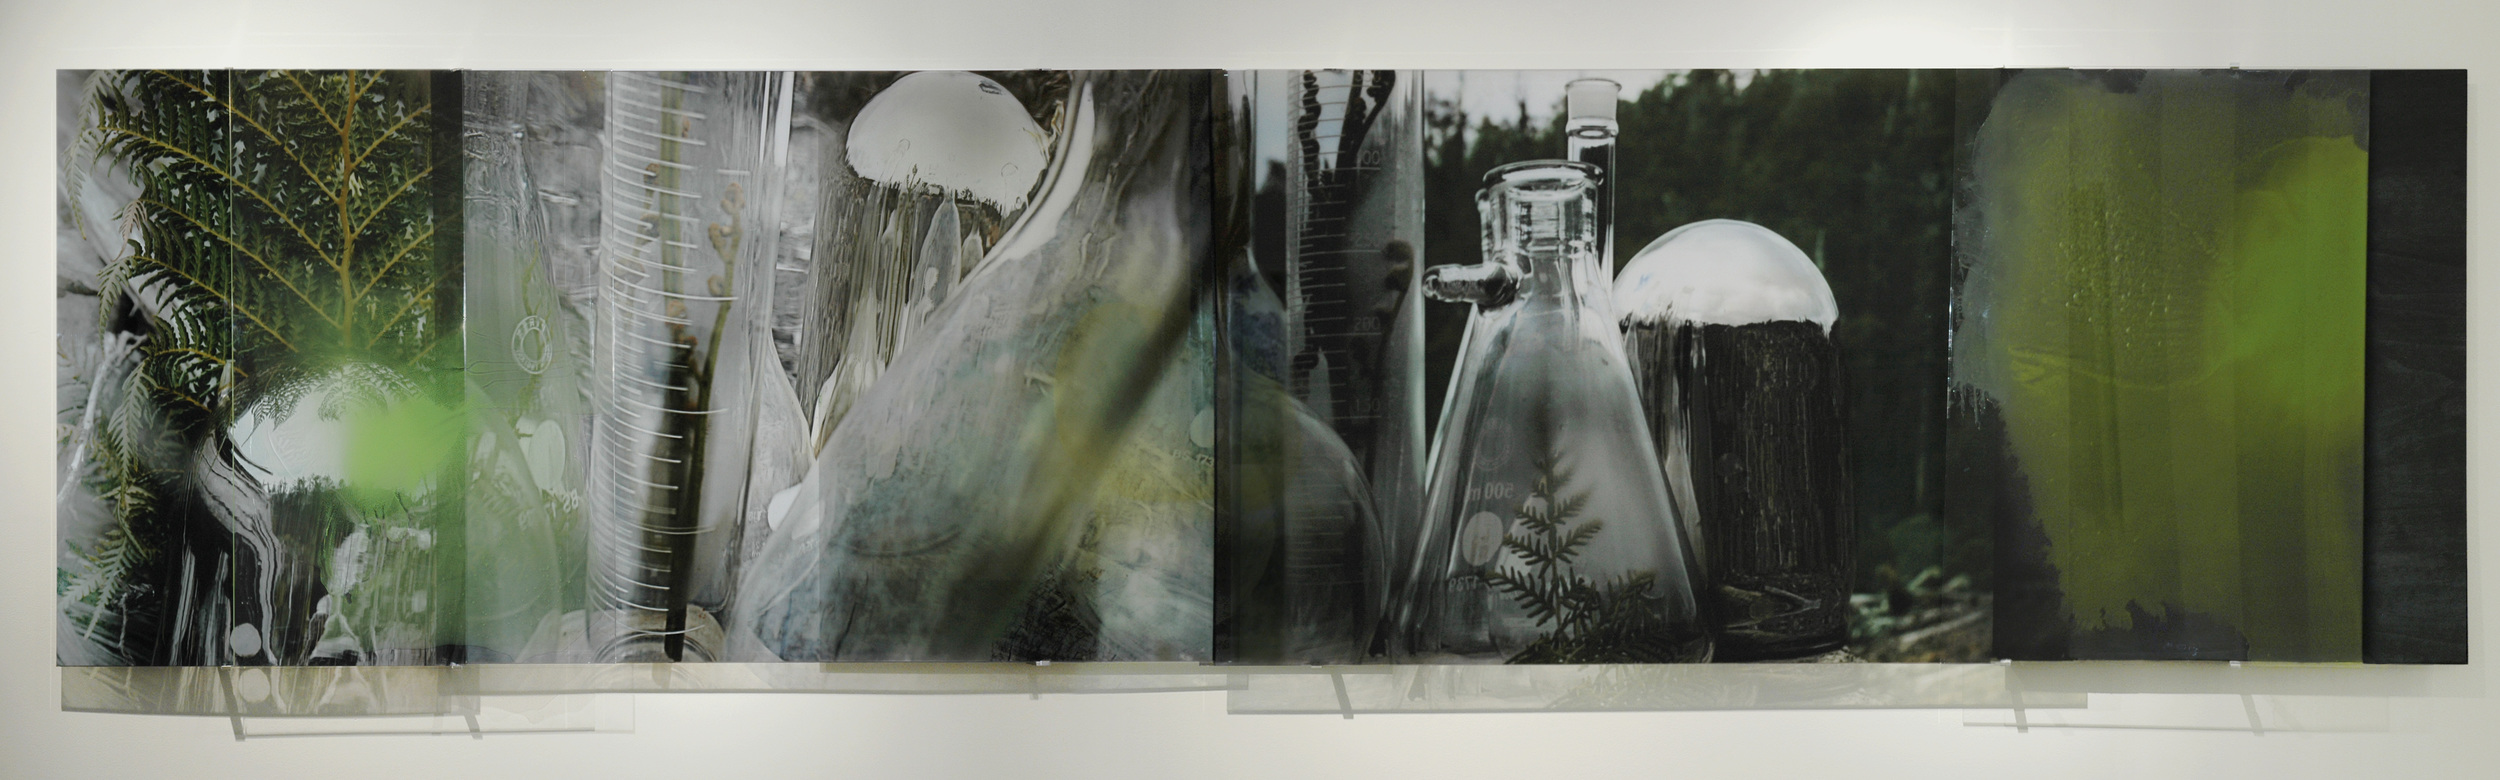 JANET LAURENCE   The Green That Was  ( Crimes against the Landscape  Series) 2008 Duraclear, polished aluminium, pigment on acrylic, mirror burnt wood 430 x 100 cm